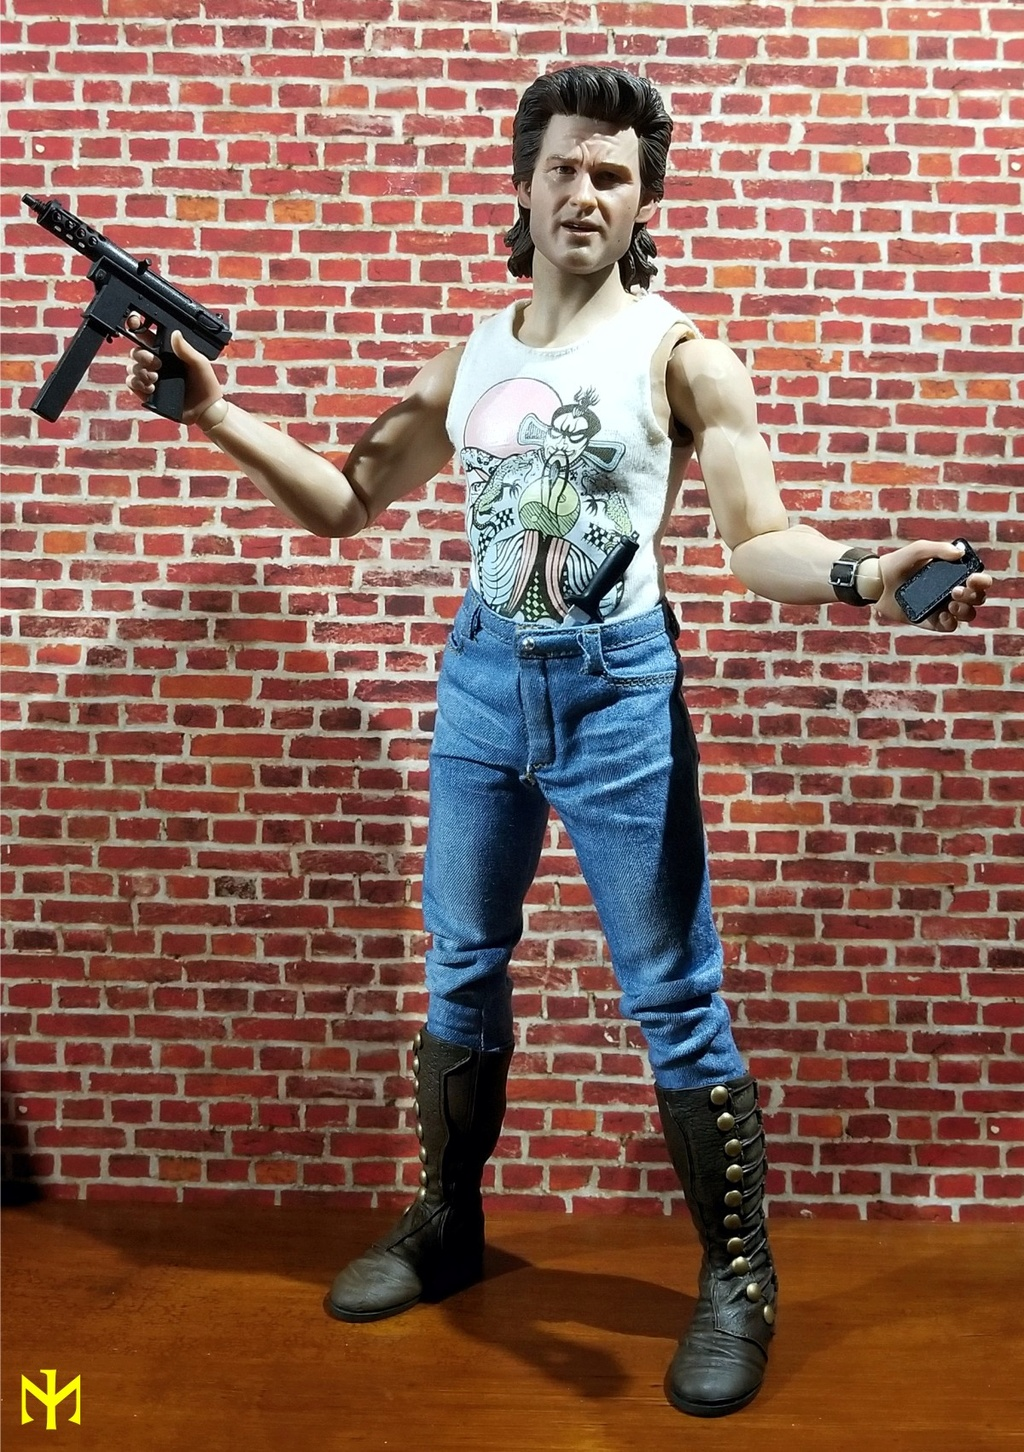 productreview - Sideshow Jack Burton Detailed Review Sscjb010